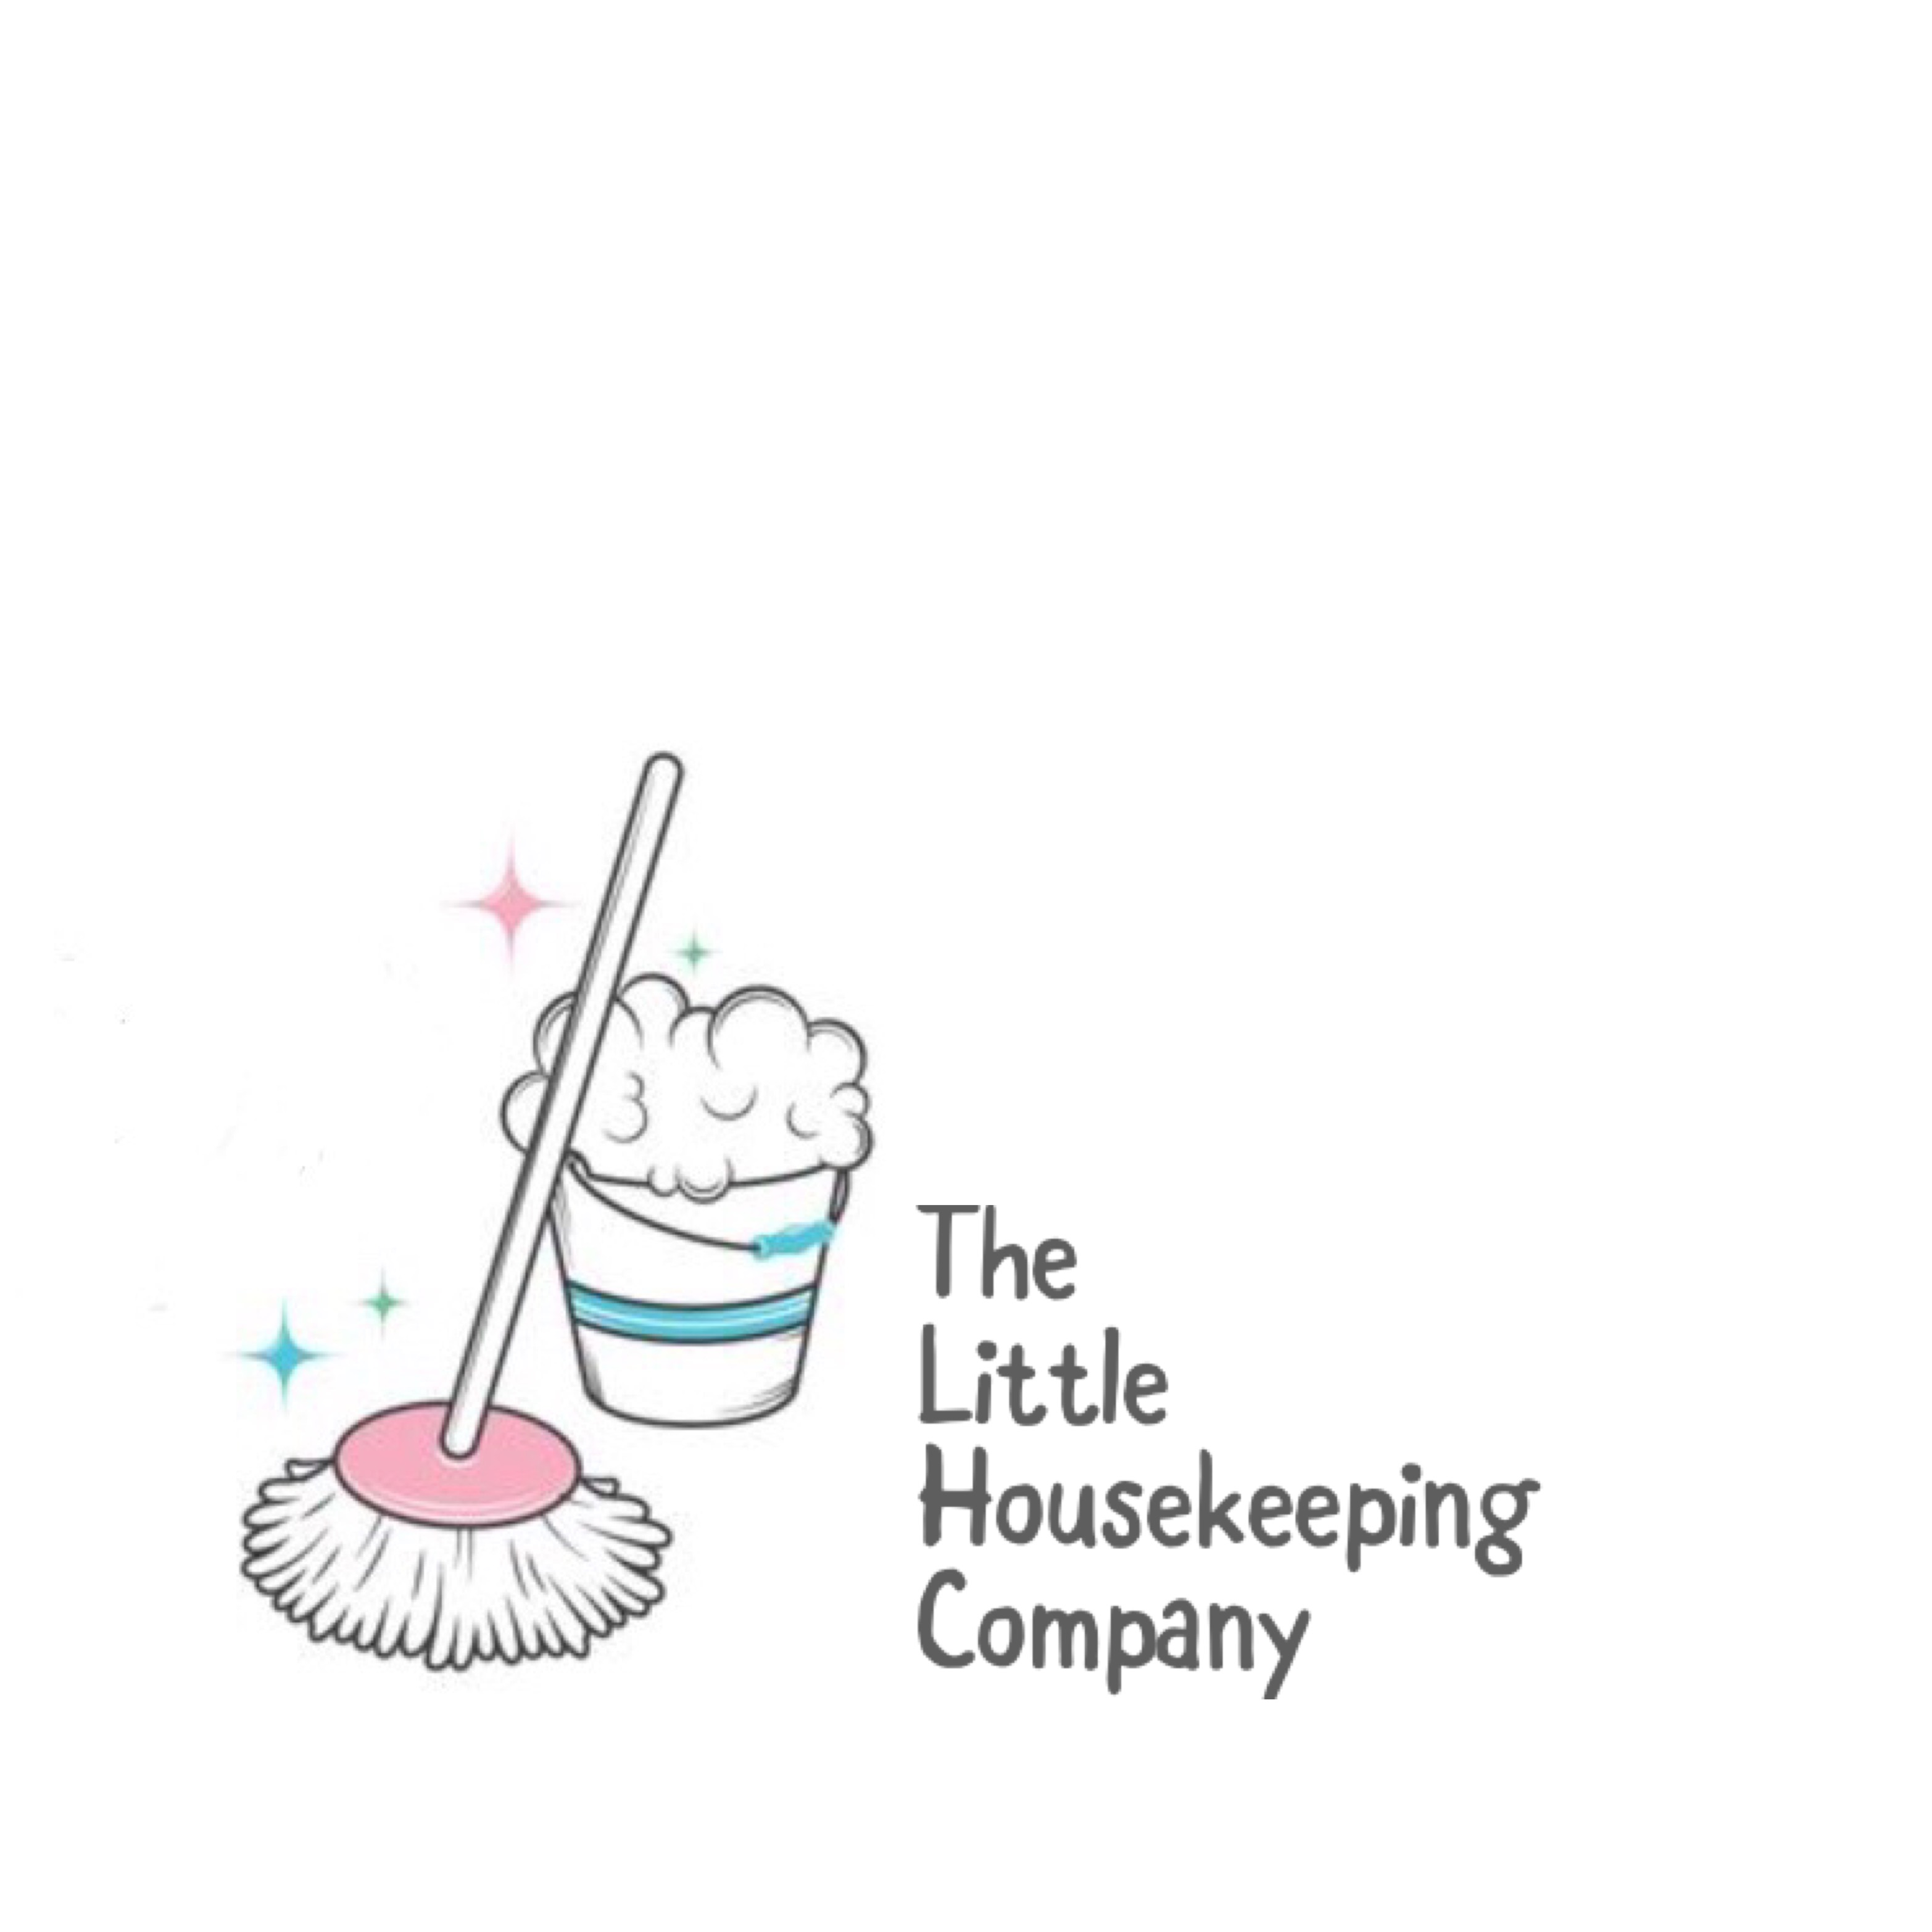 The Little Housekeeping Company